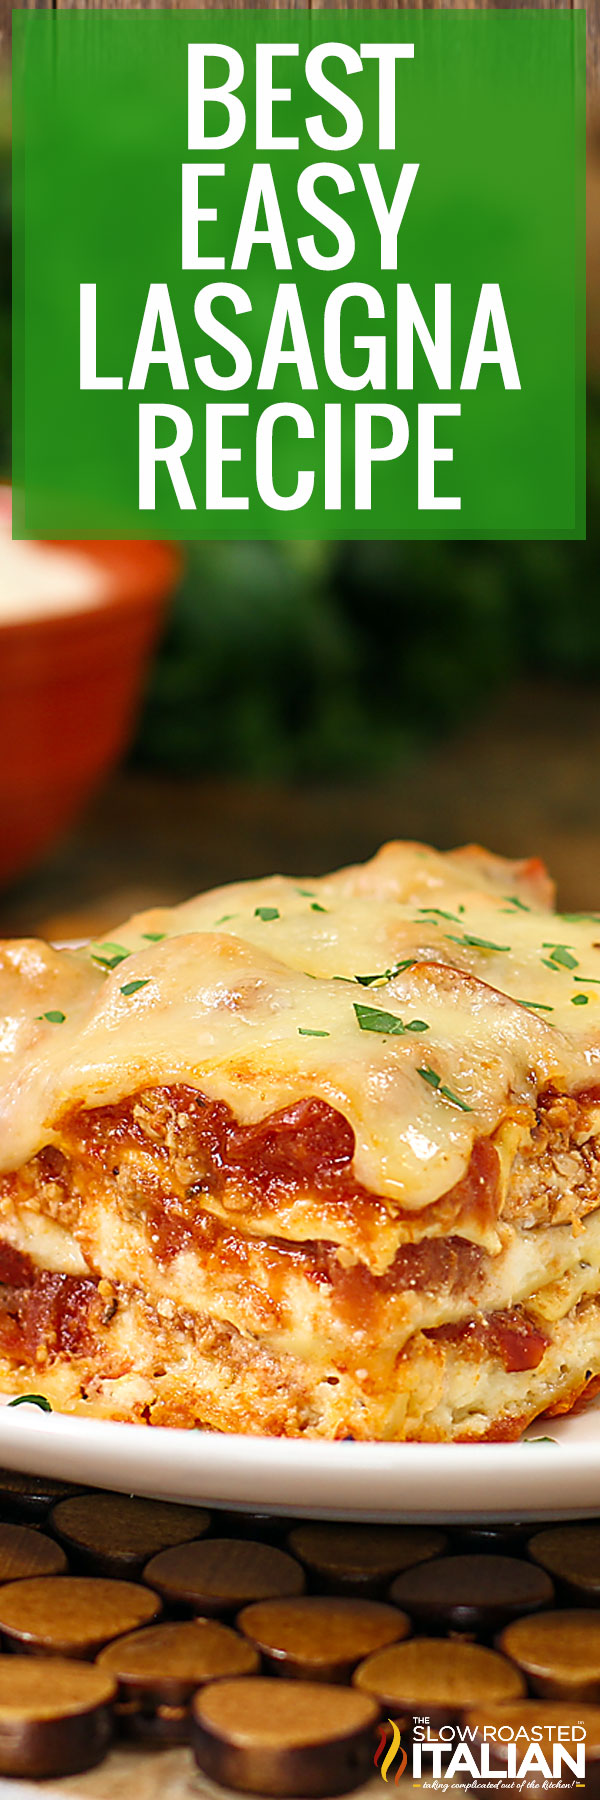 Title text (a slice pictured on a white plate): Best Easy Lasagna Recipe